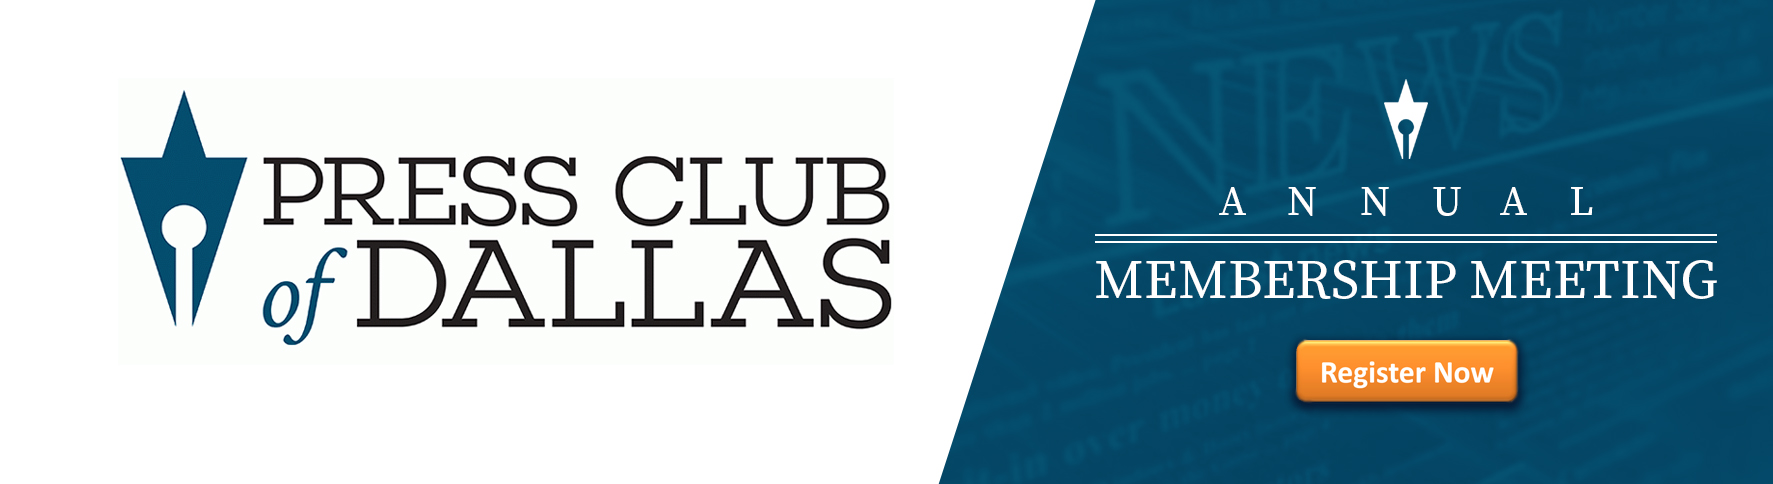 Press-Club-of-Dallas_Annual-Membership-Meeting